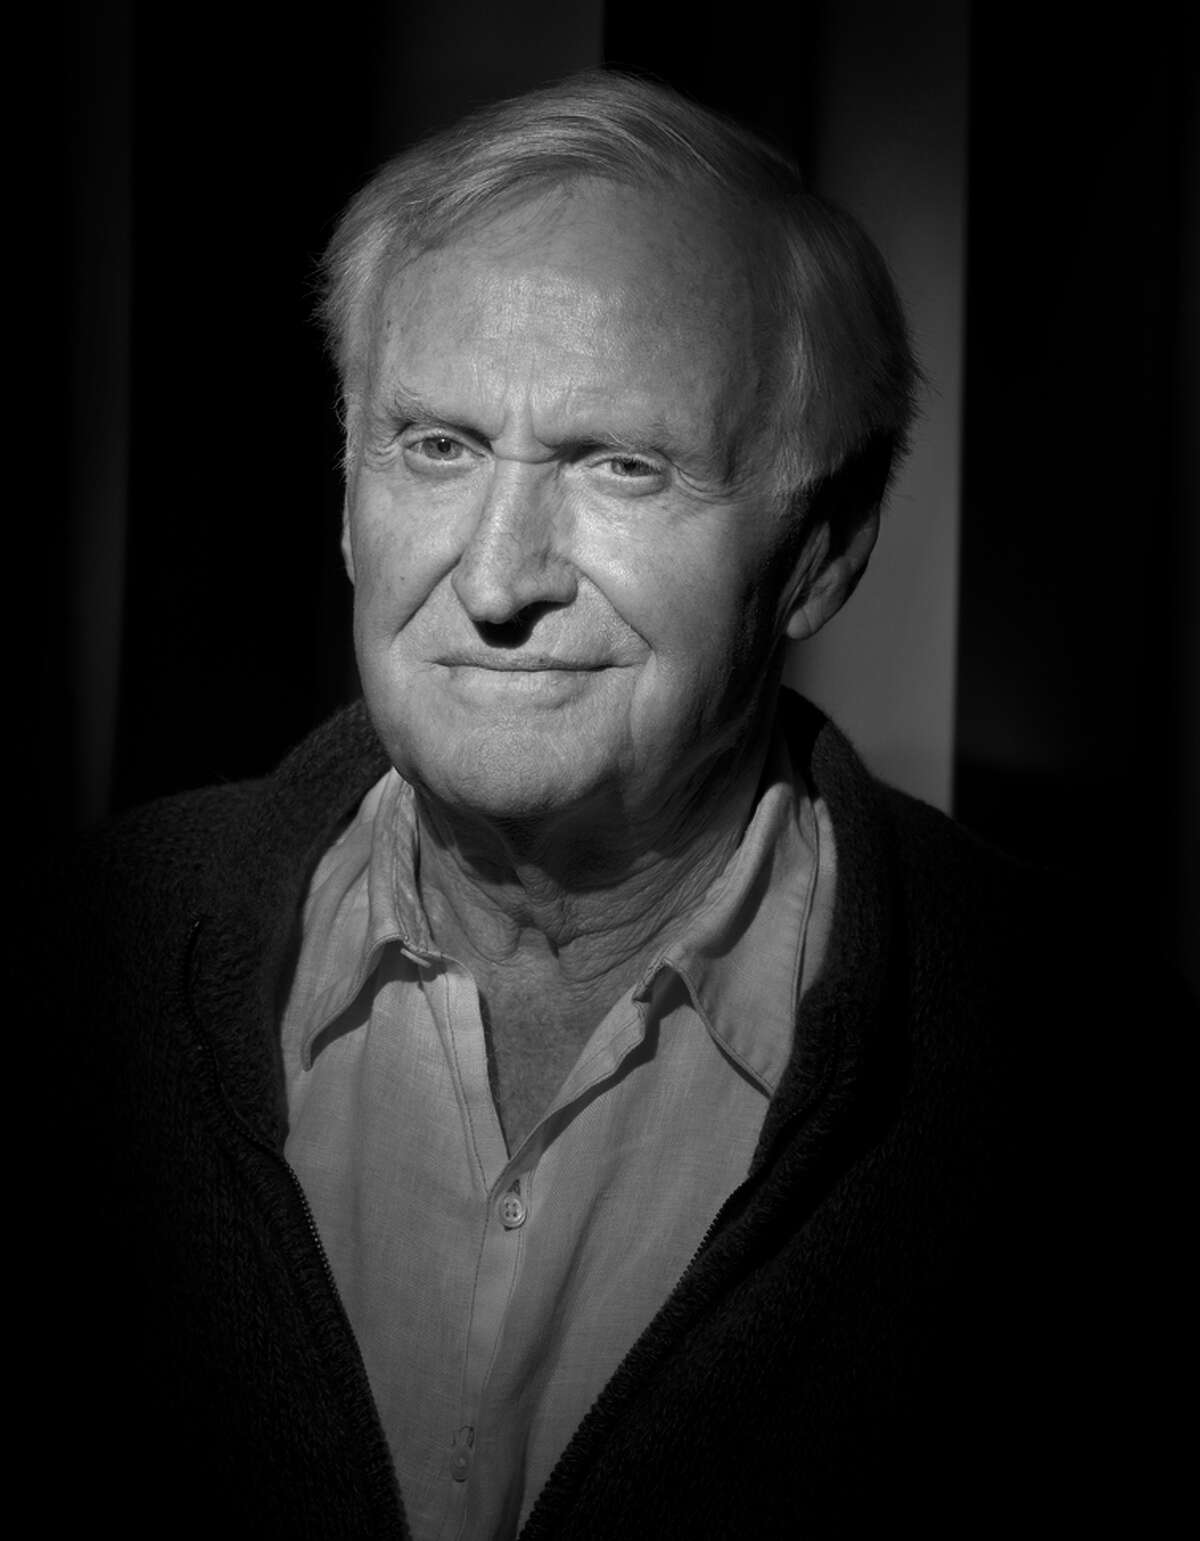 John Boorman conceived of the film in the 1980s.